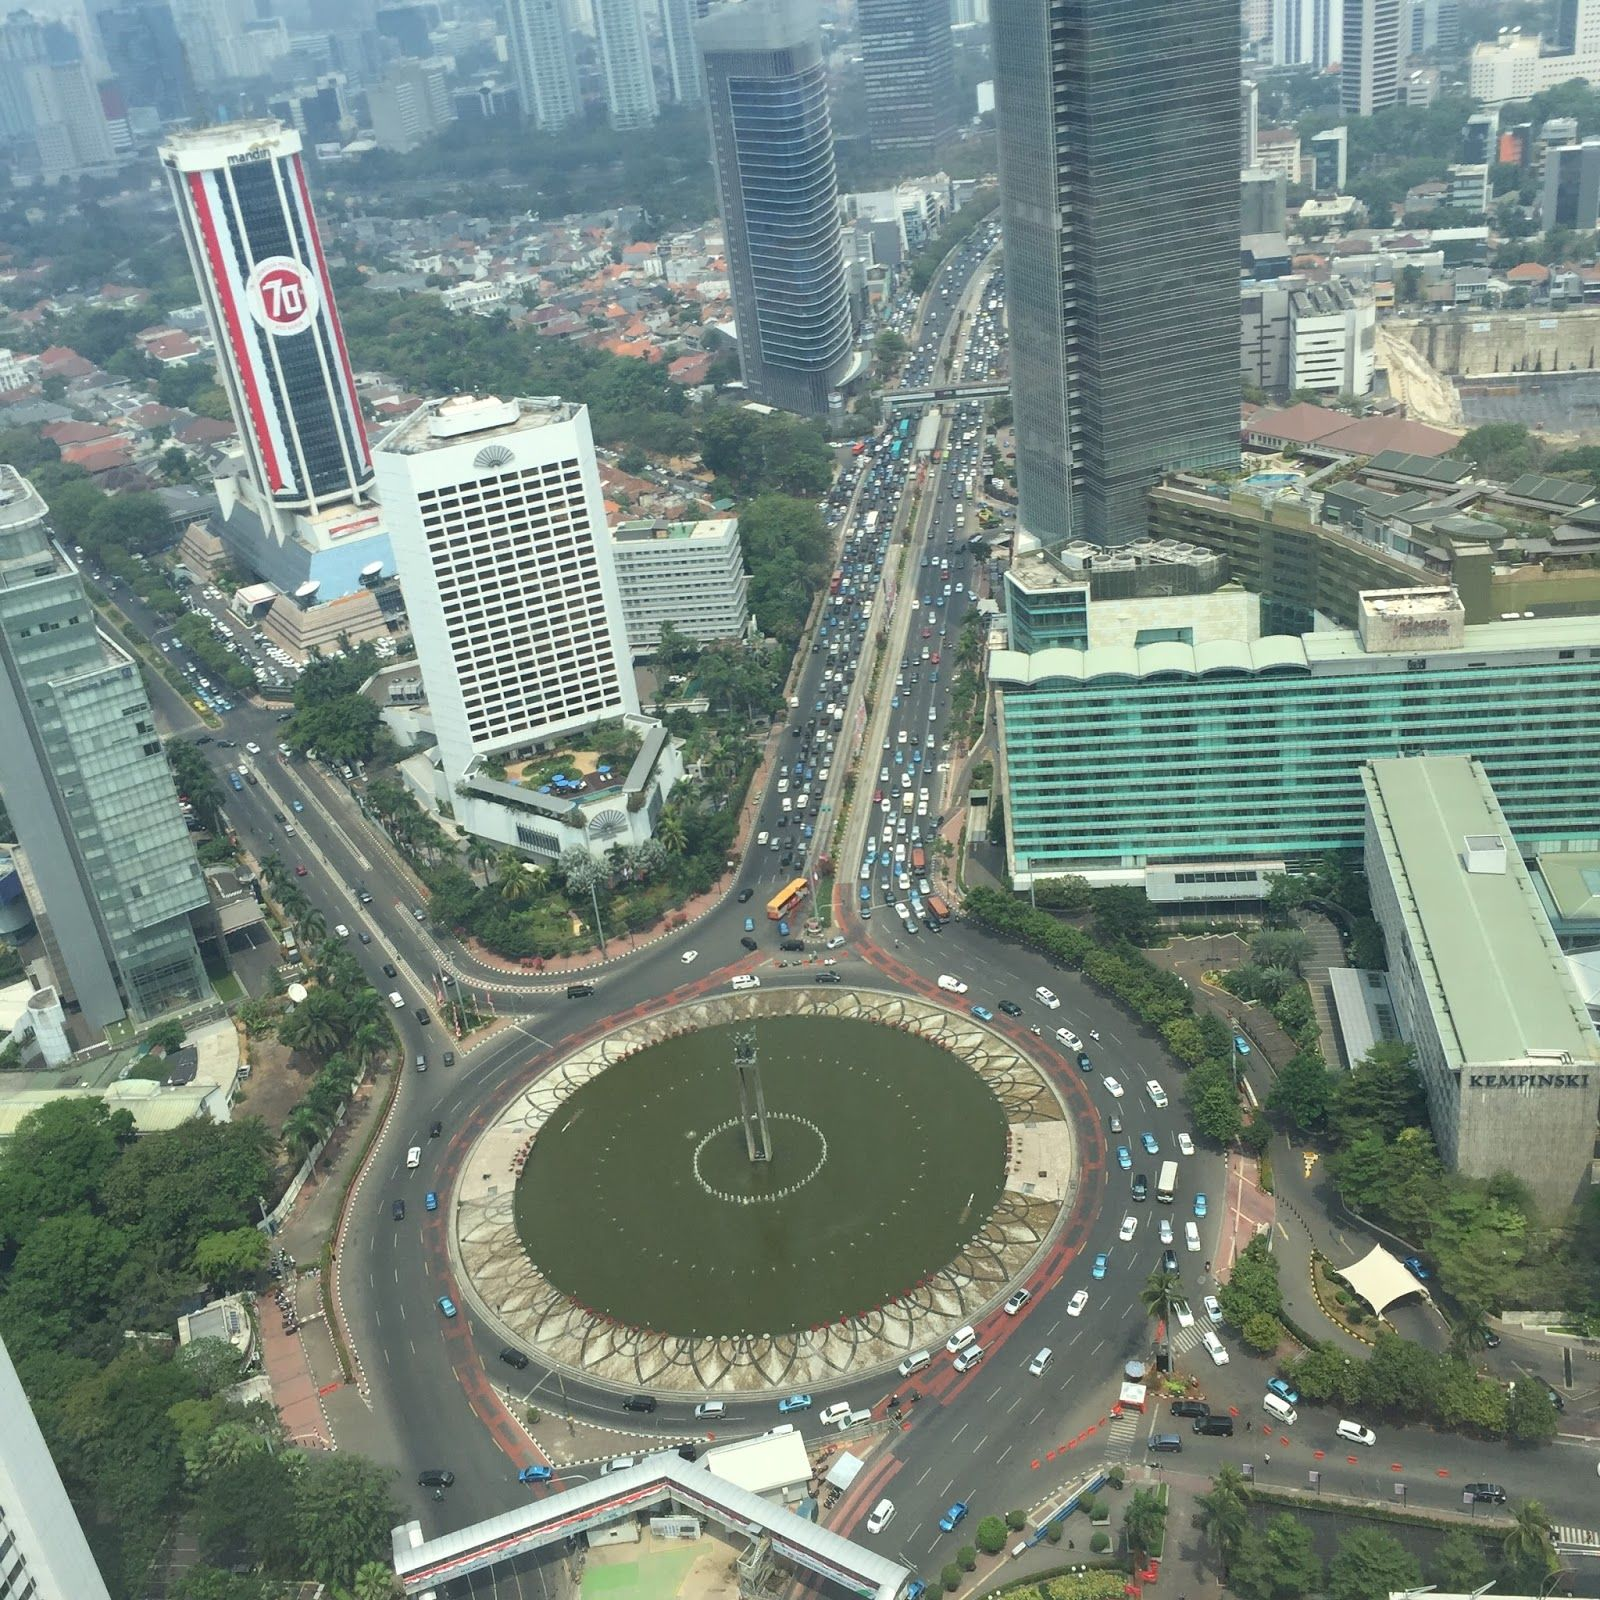 Indonesia! One of the best country in the world.